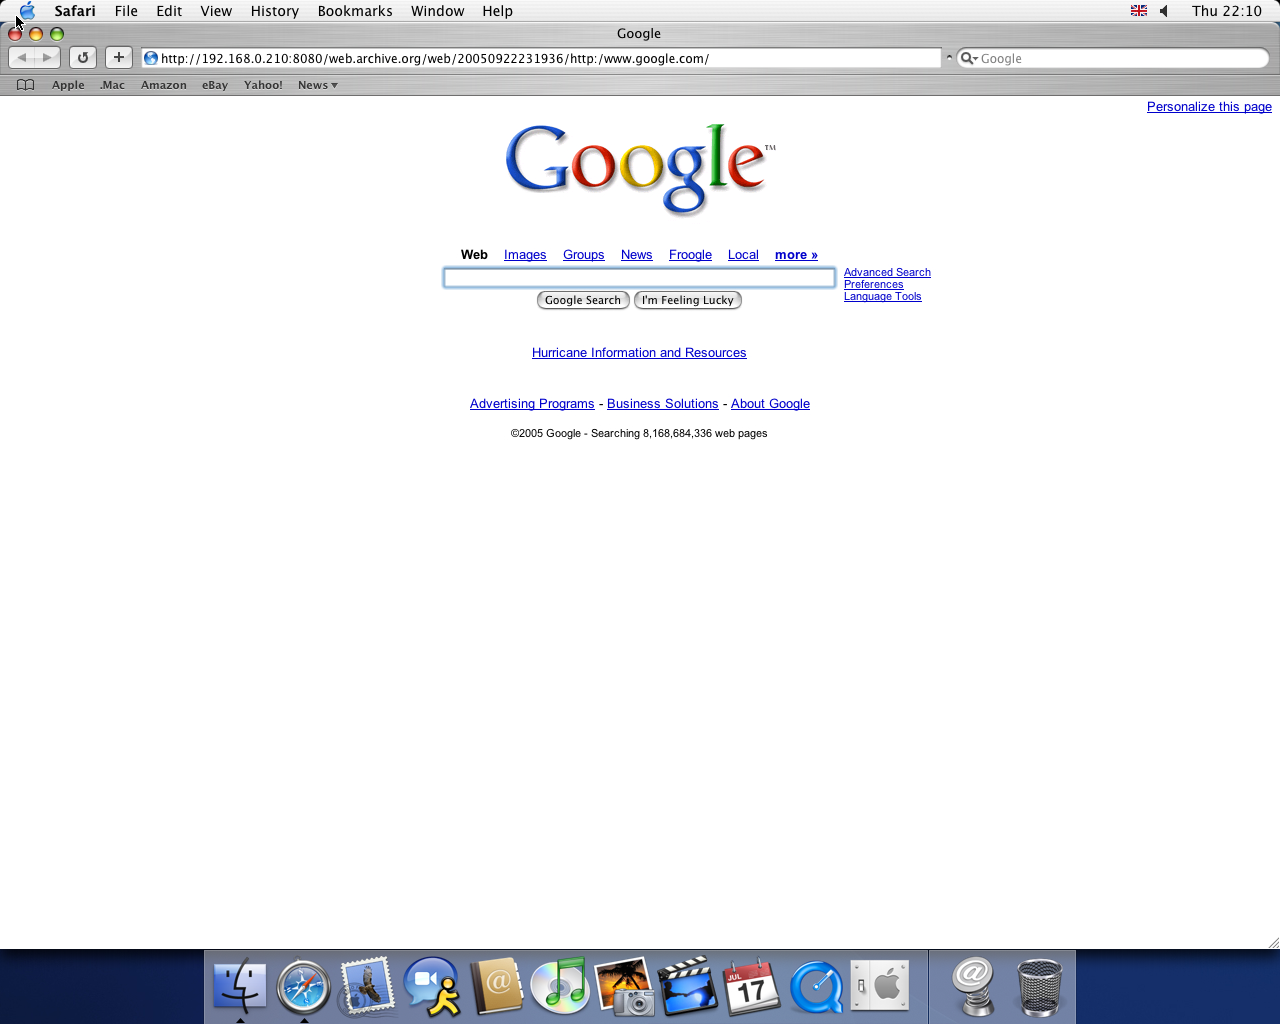 OS X 10.3 PPC with Safari 1.1 displaying a page from Google.com archived at September 22, 2005 at 23:19:36